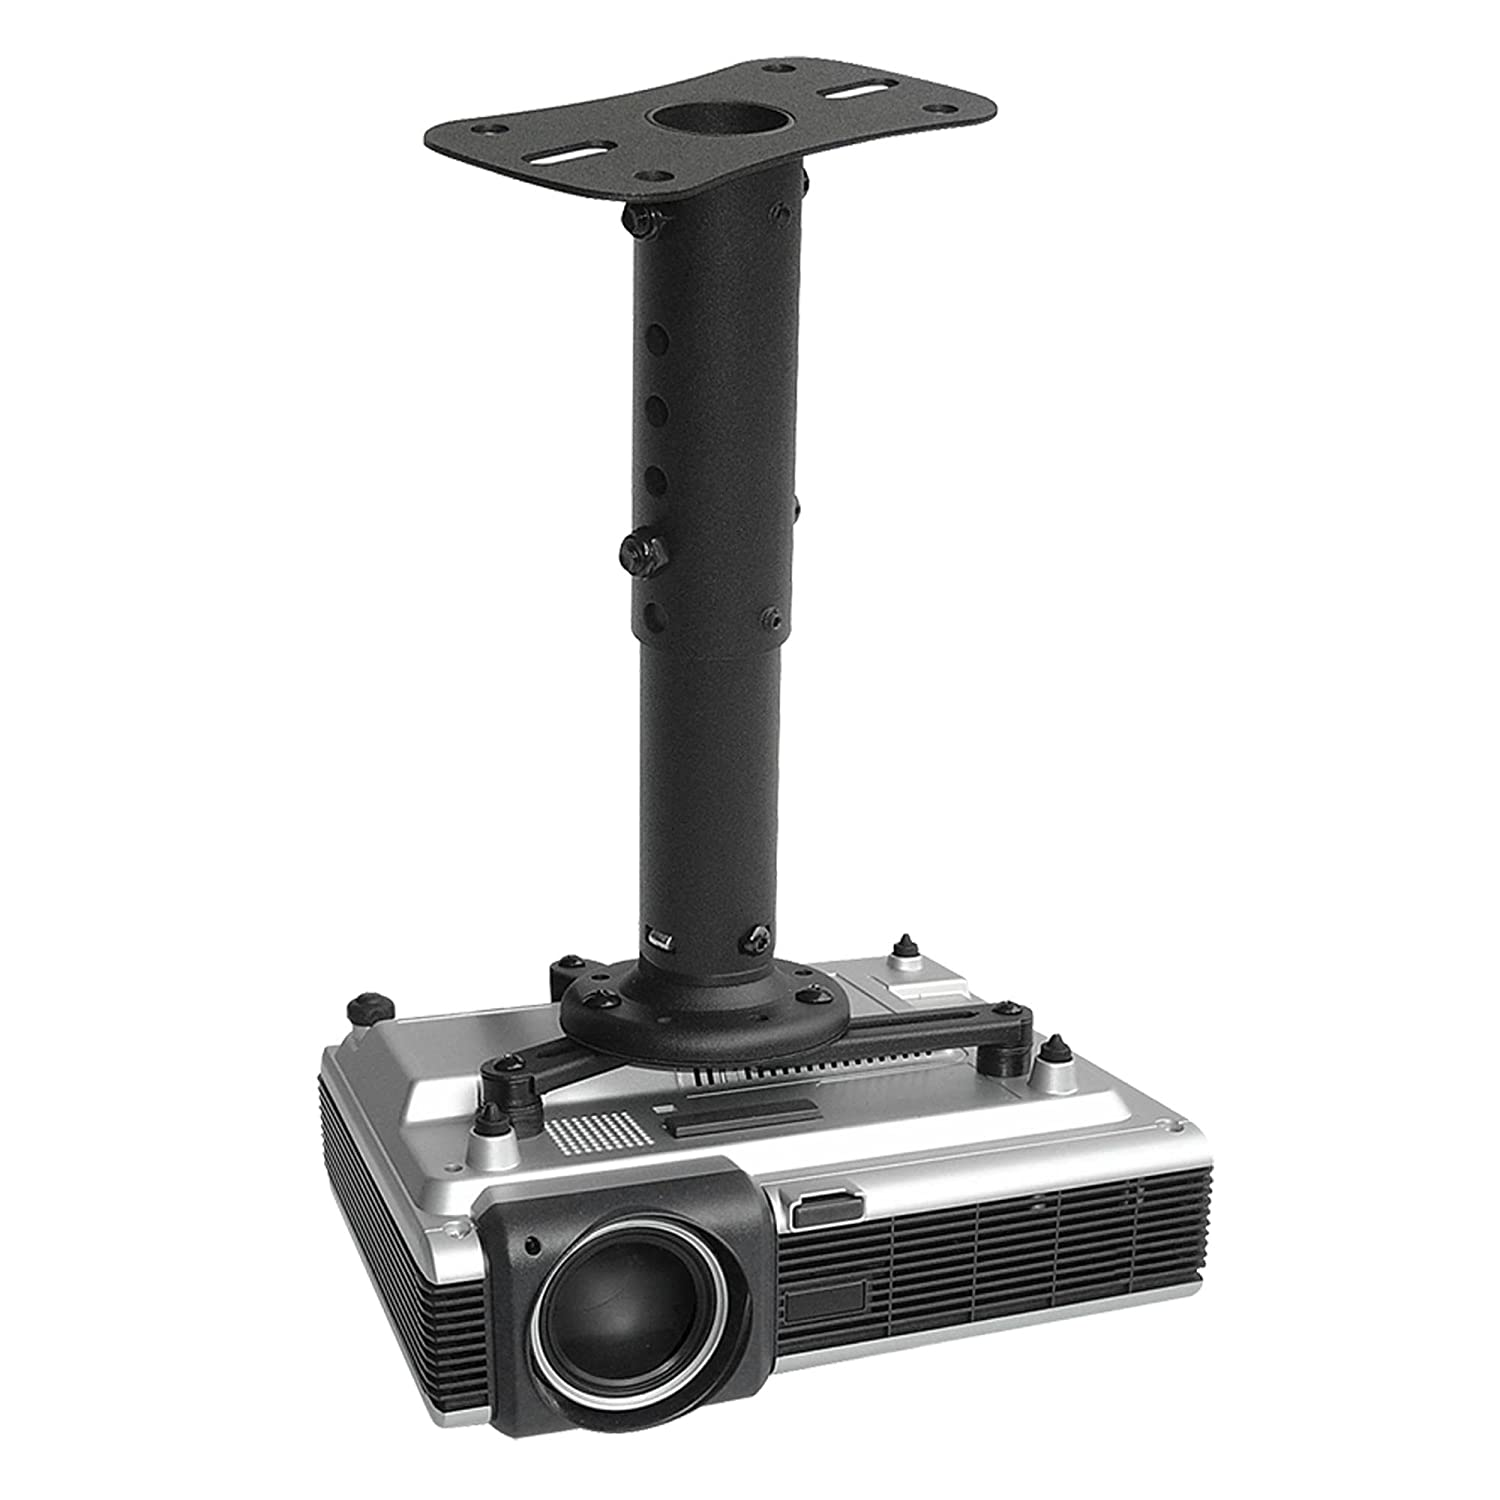 epson ideas mount design ceiling projector home elpmbpjf universal